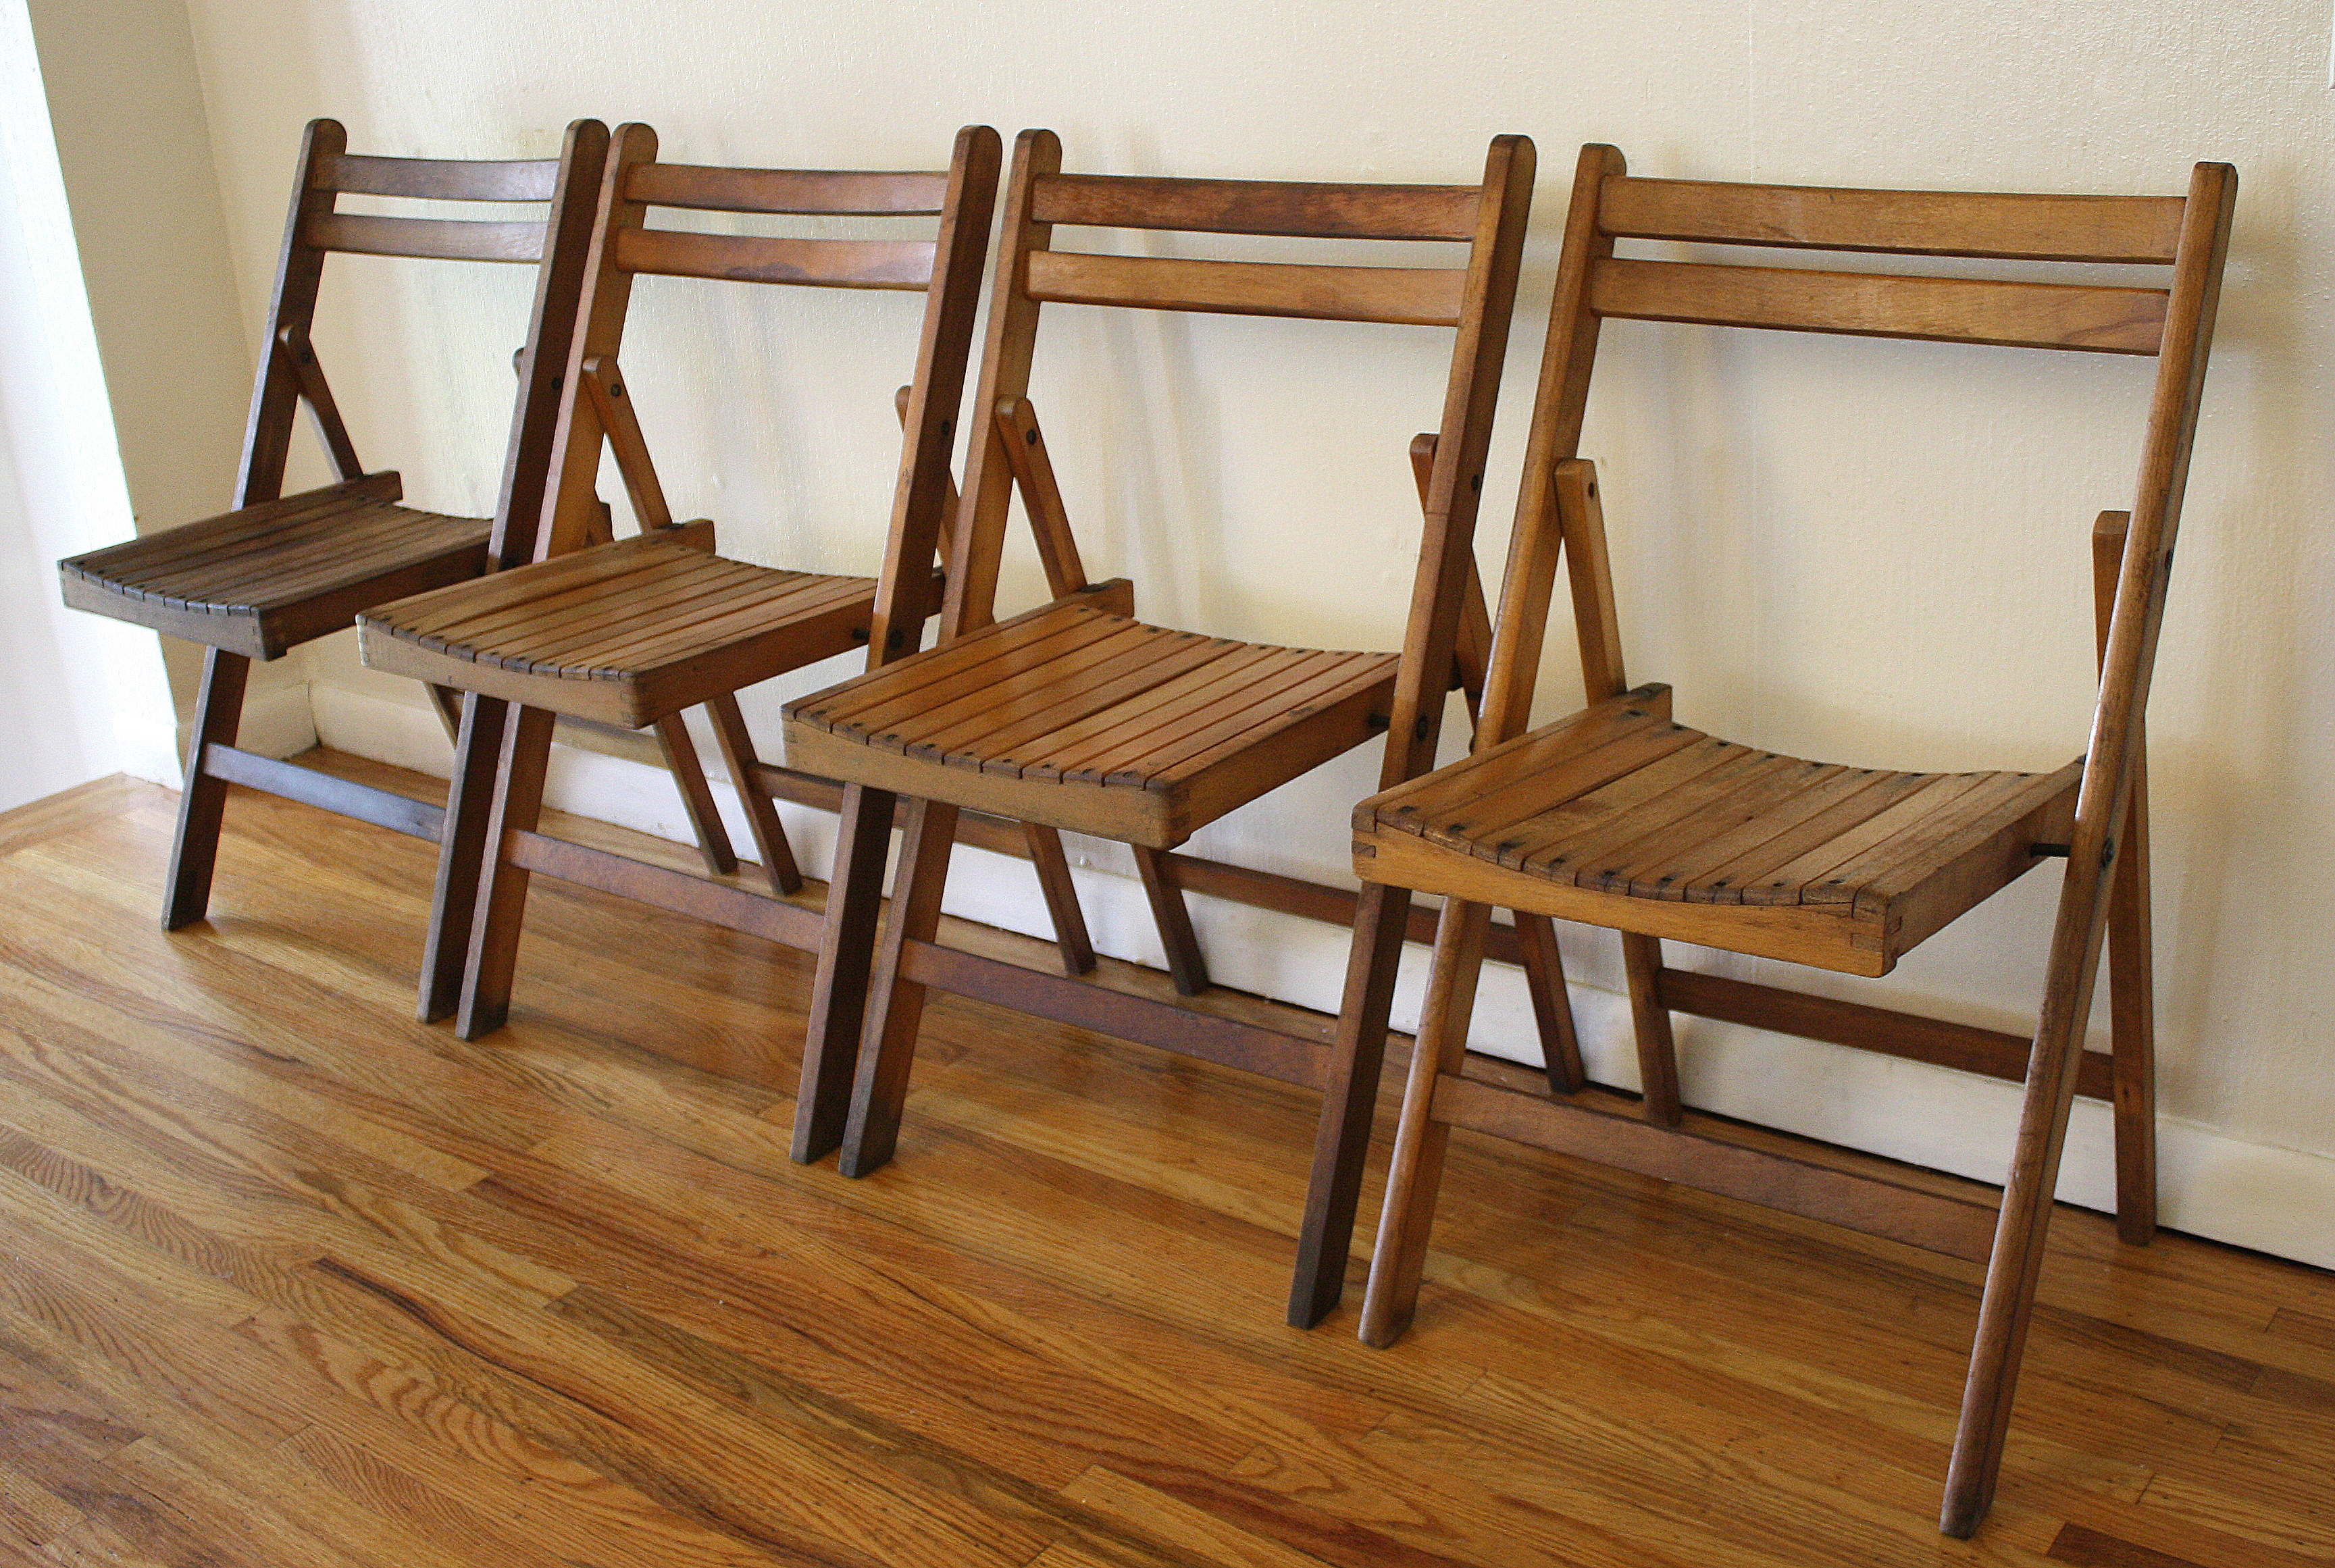 set of 4 antique slatted folding chairs